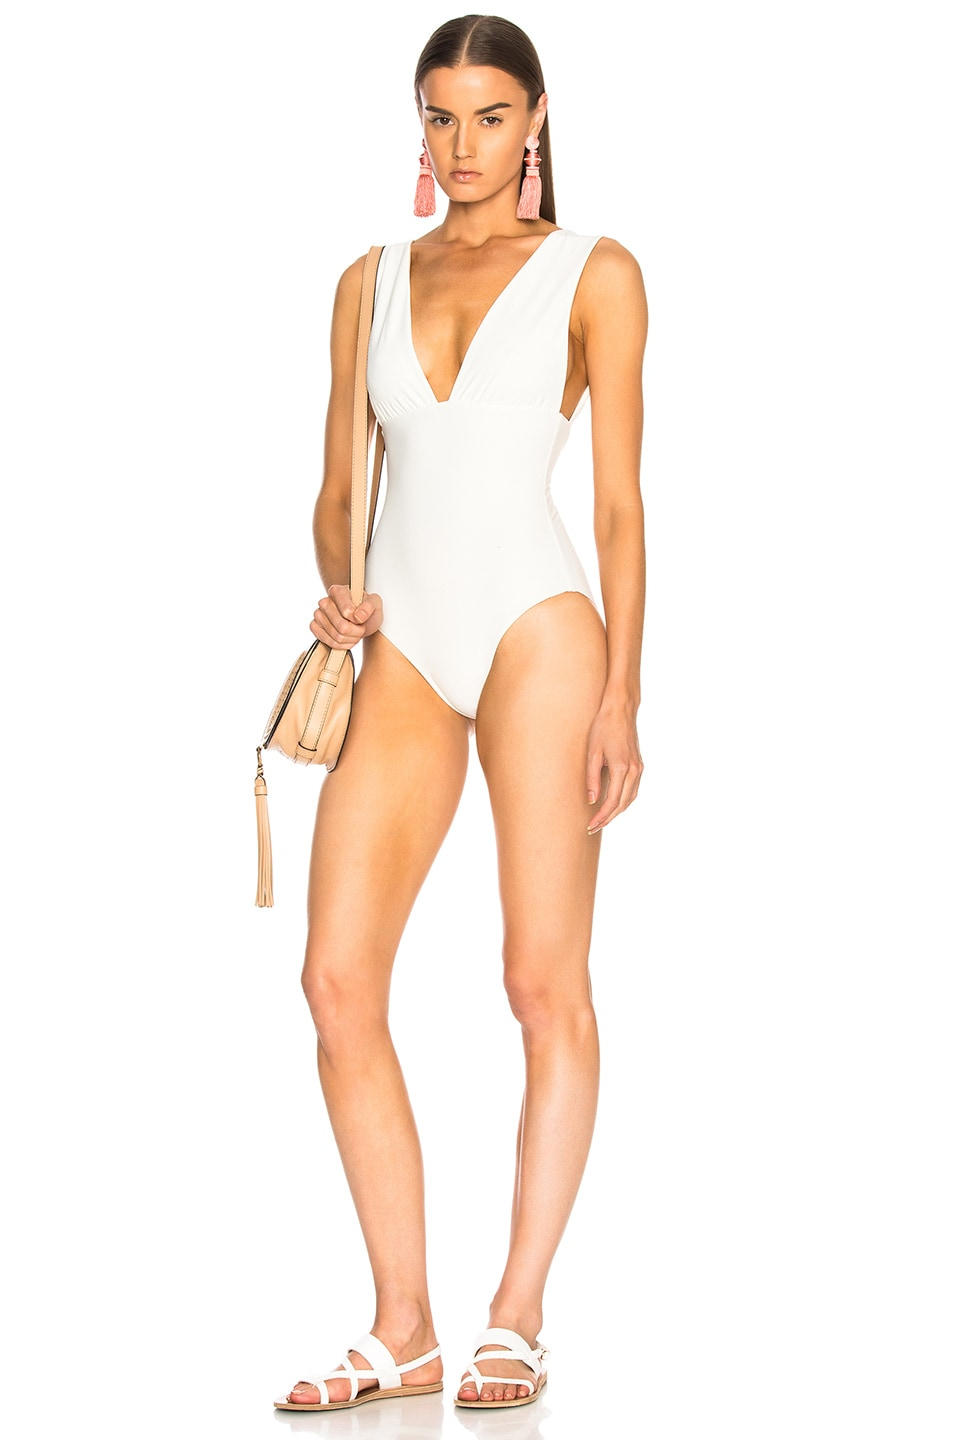 CALI DREAMING GROVE SWIMSUIT IN WHITE